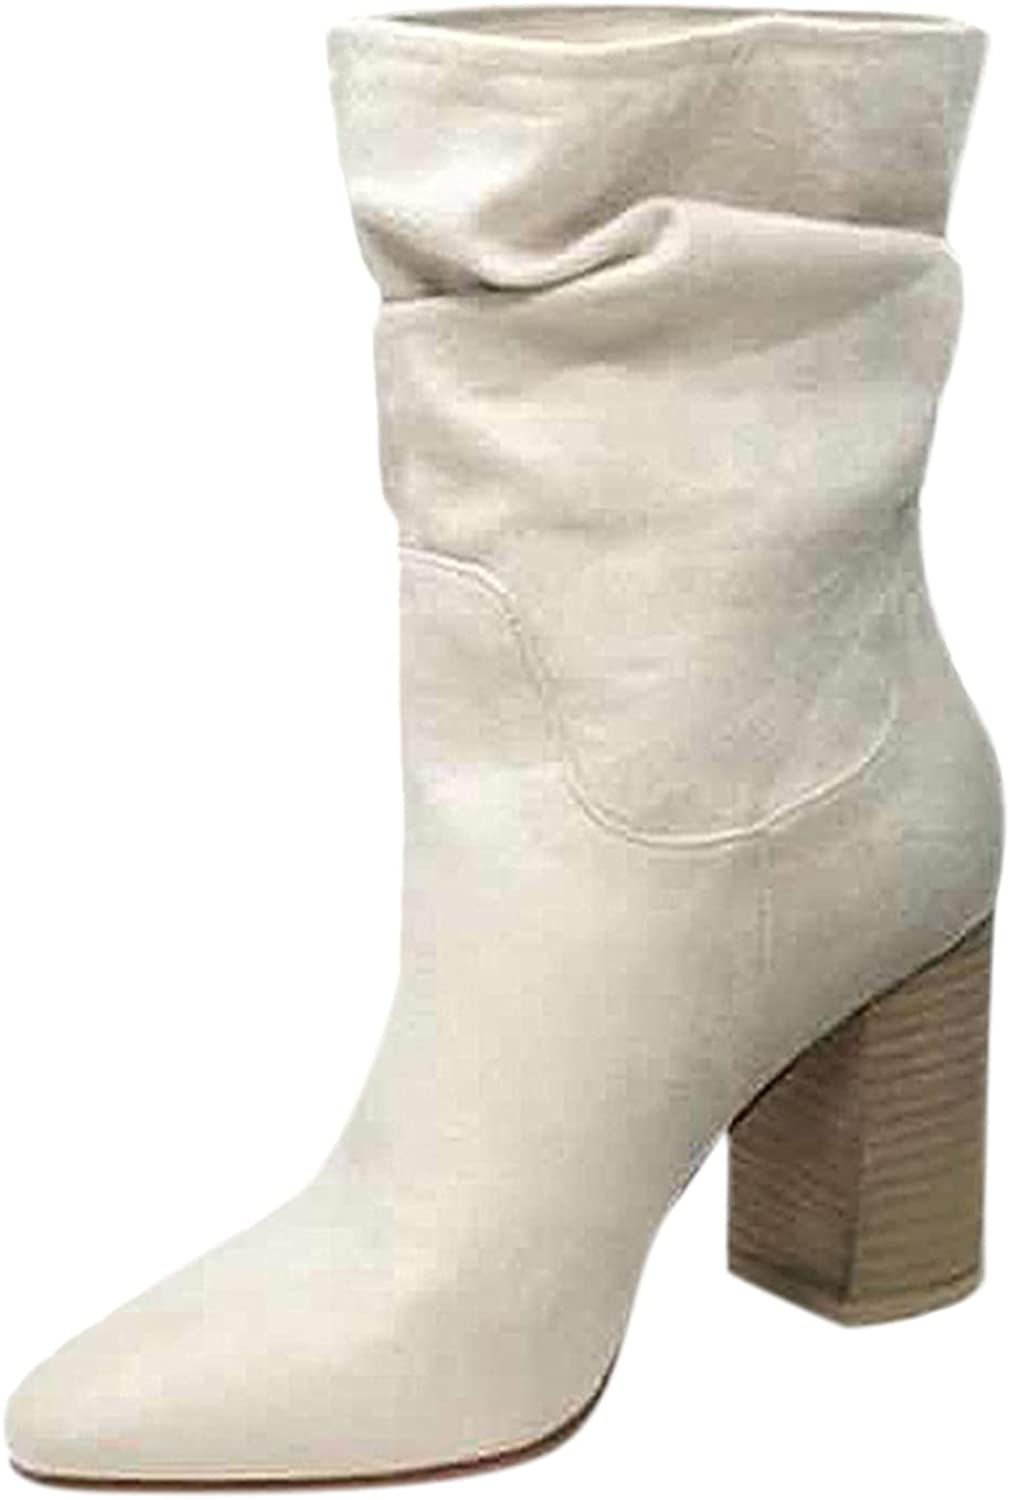 BGFIIPAJG Boots for Women,Fashion Womens Flats Non-Slip Flock Slip-On Round Toe Casual Shoes Ankle Boots Mid-Calf Boots with Chunky Heel